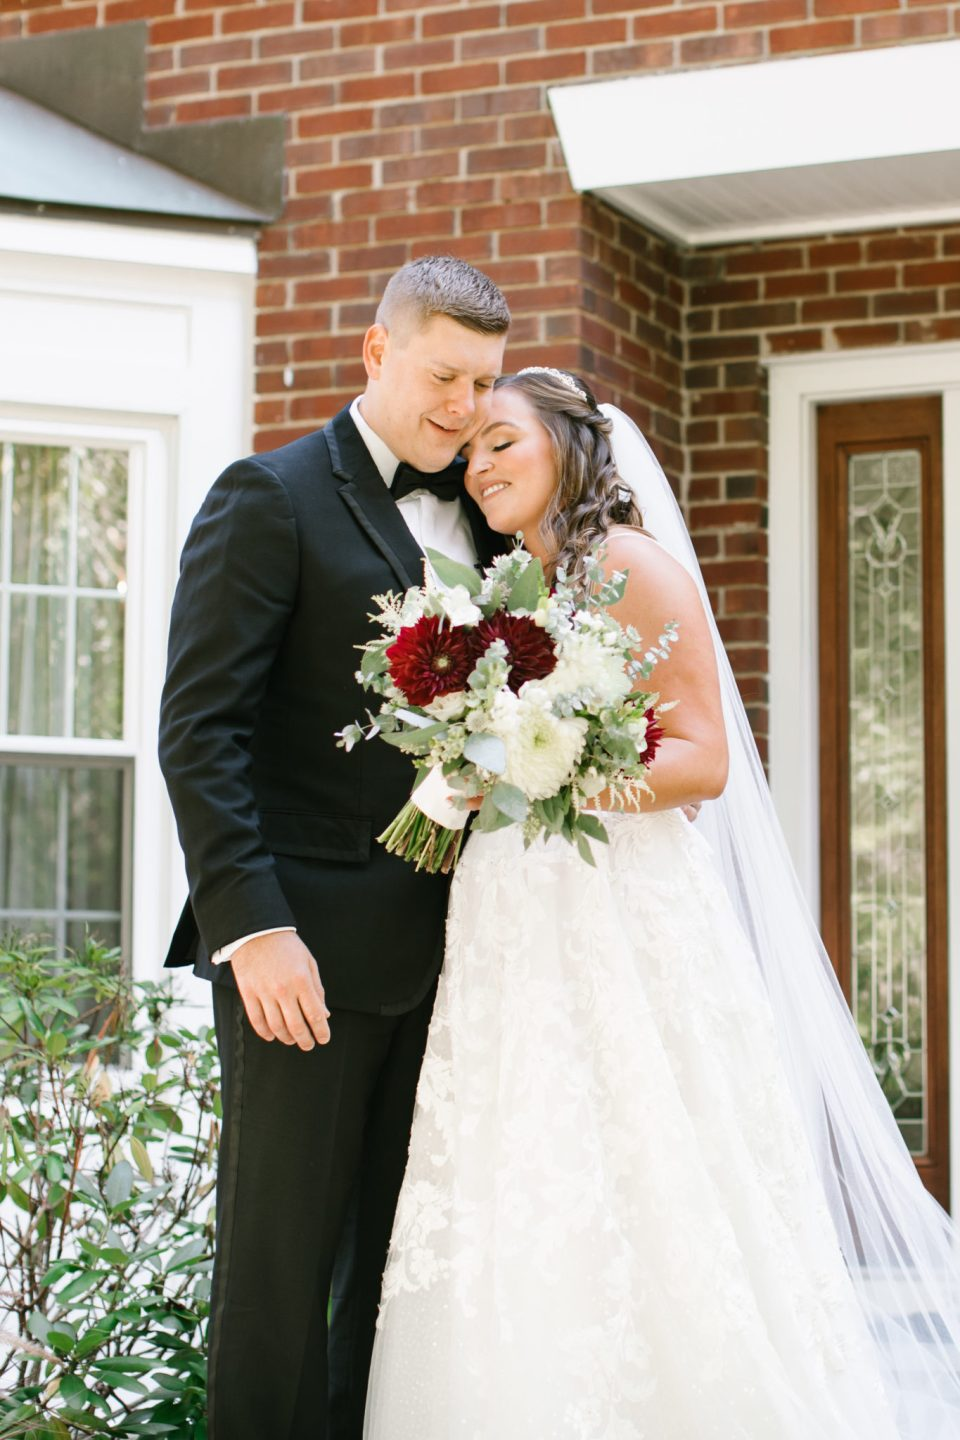 Ashley Mac Photographs photographs Navesink Country Club wedding day first look